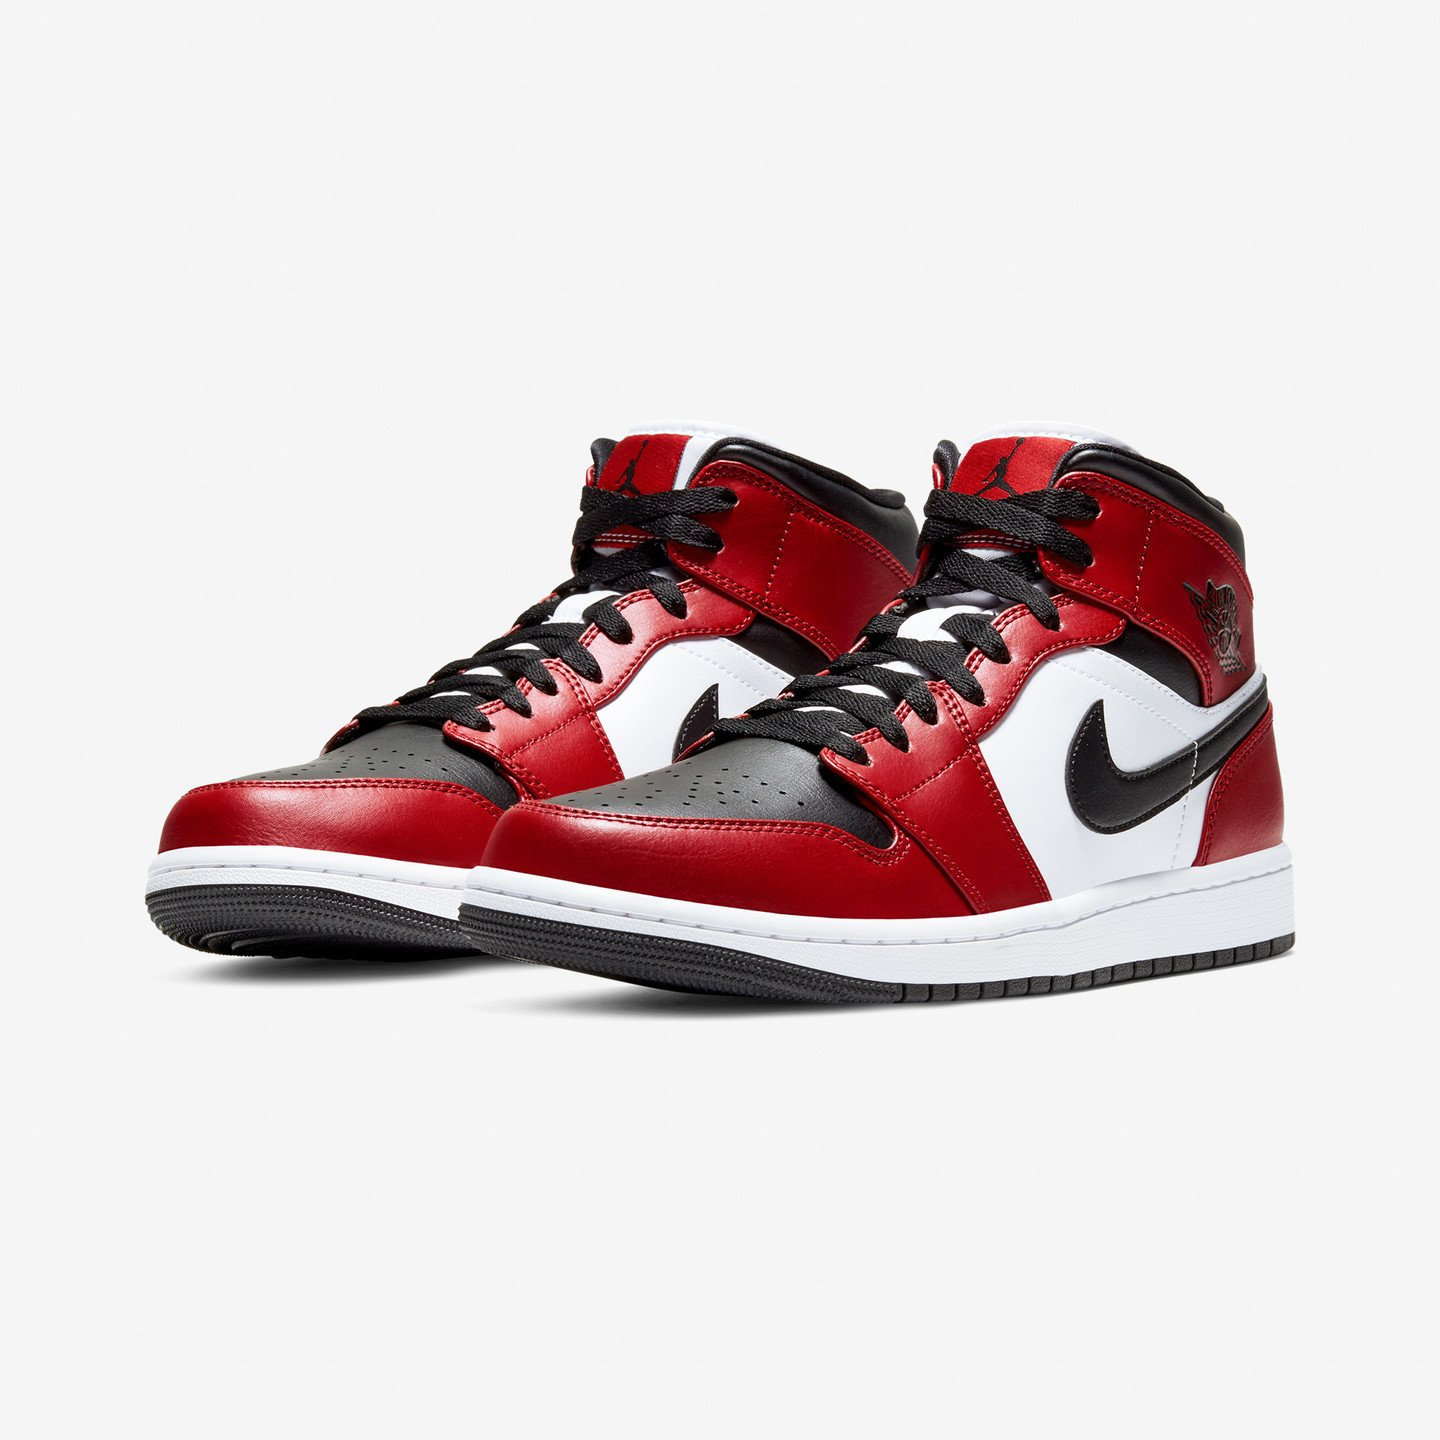 Jordan Air Jordan 1 Mid Black / Black / Gym Red 554724-069